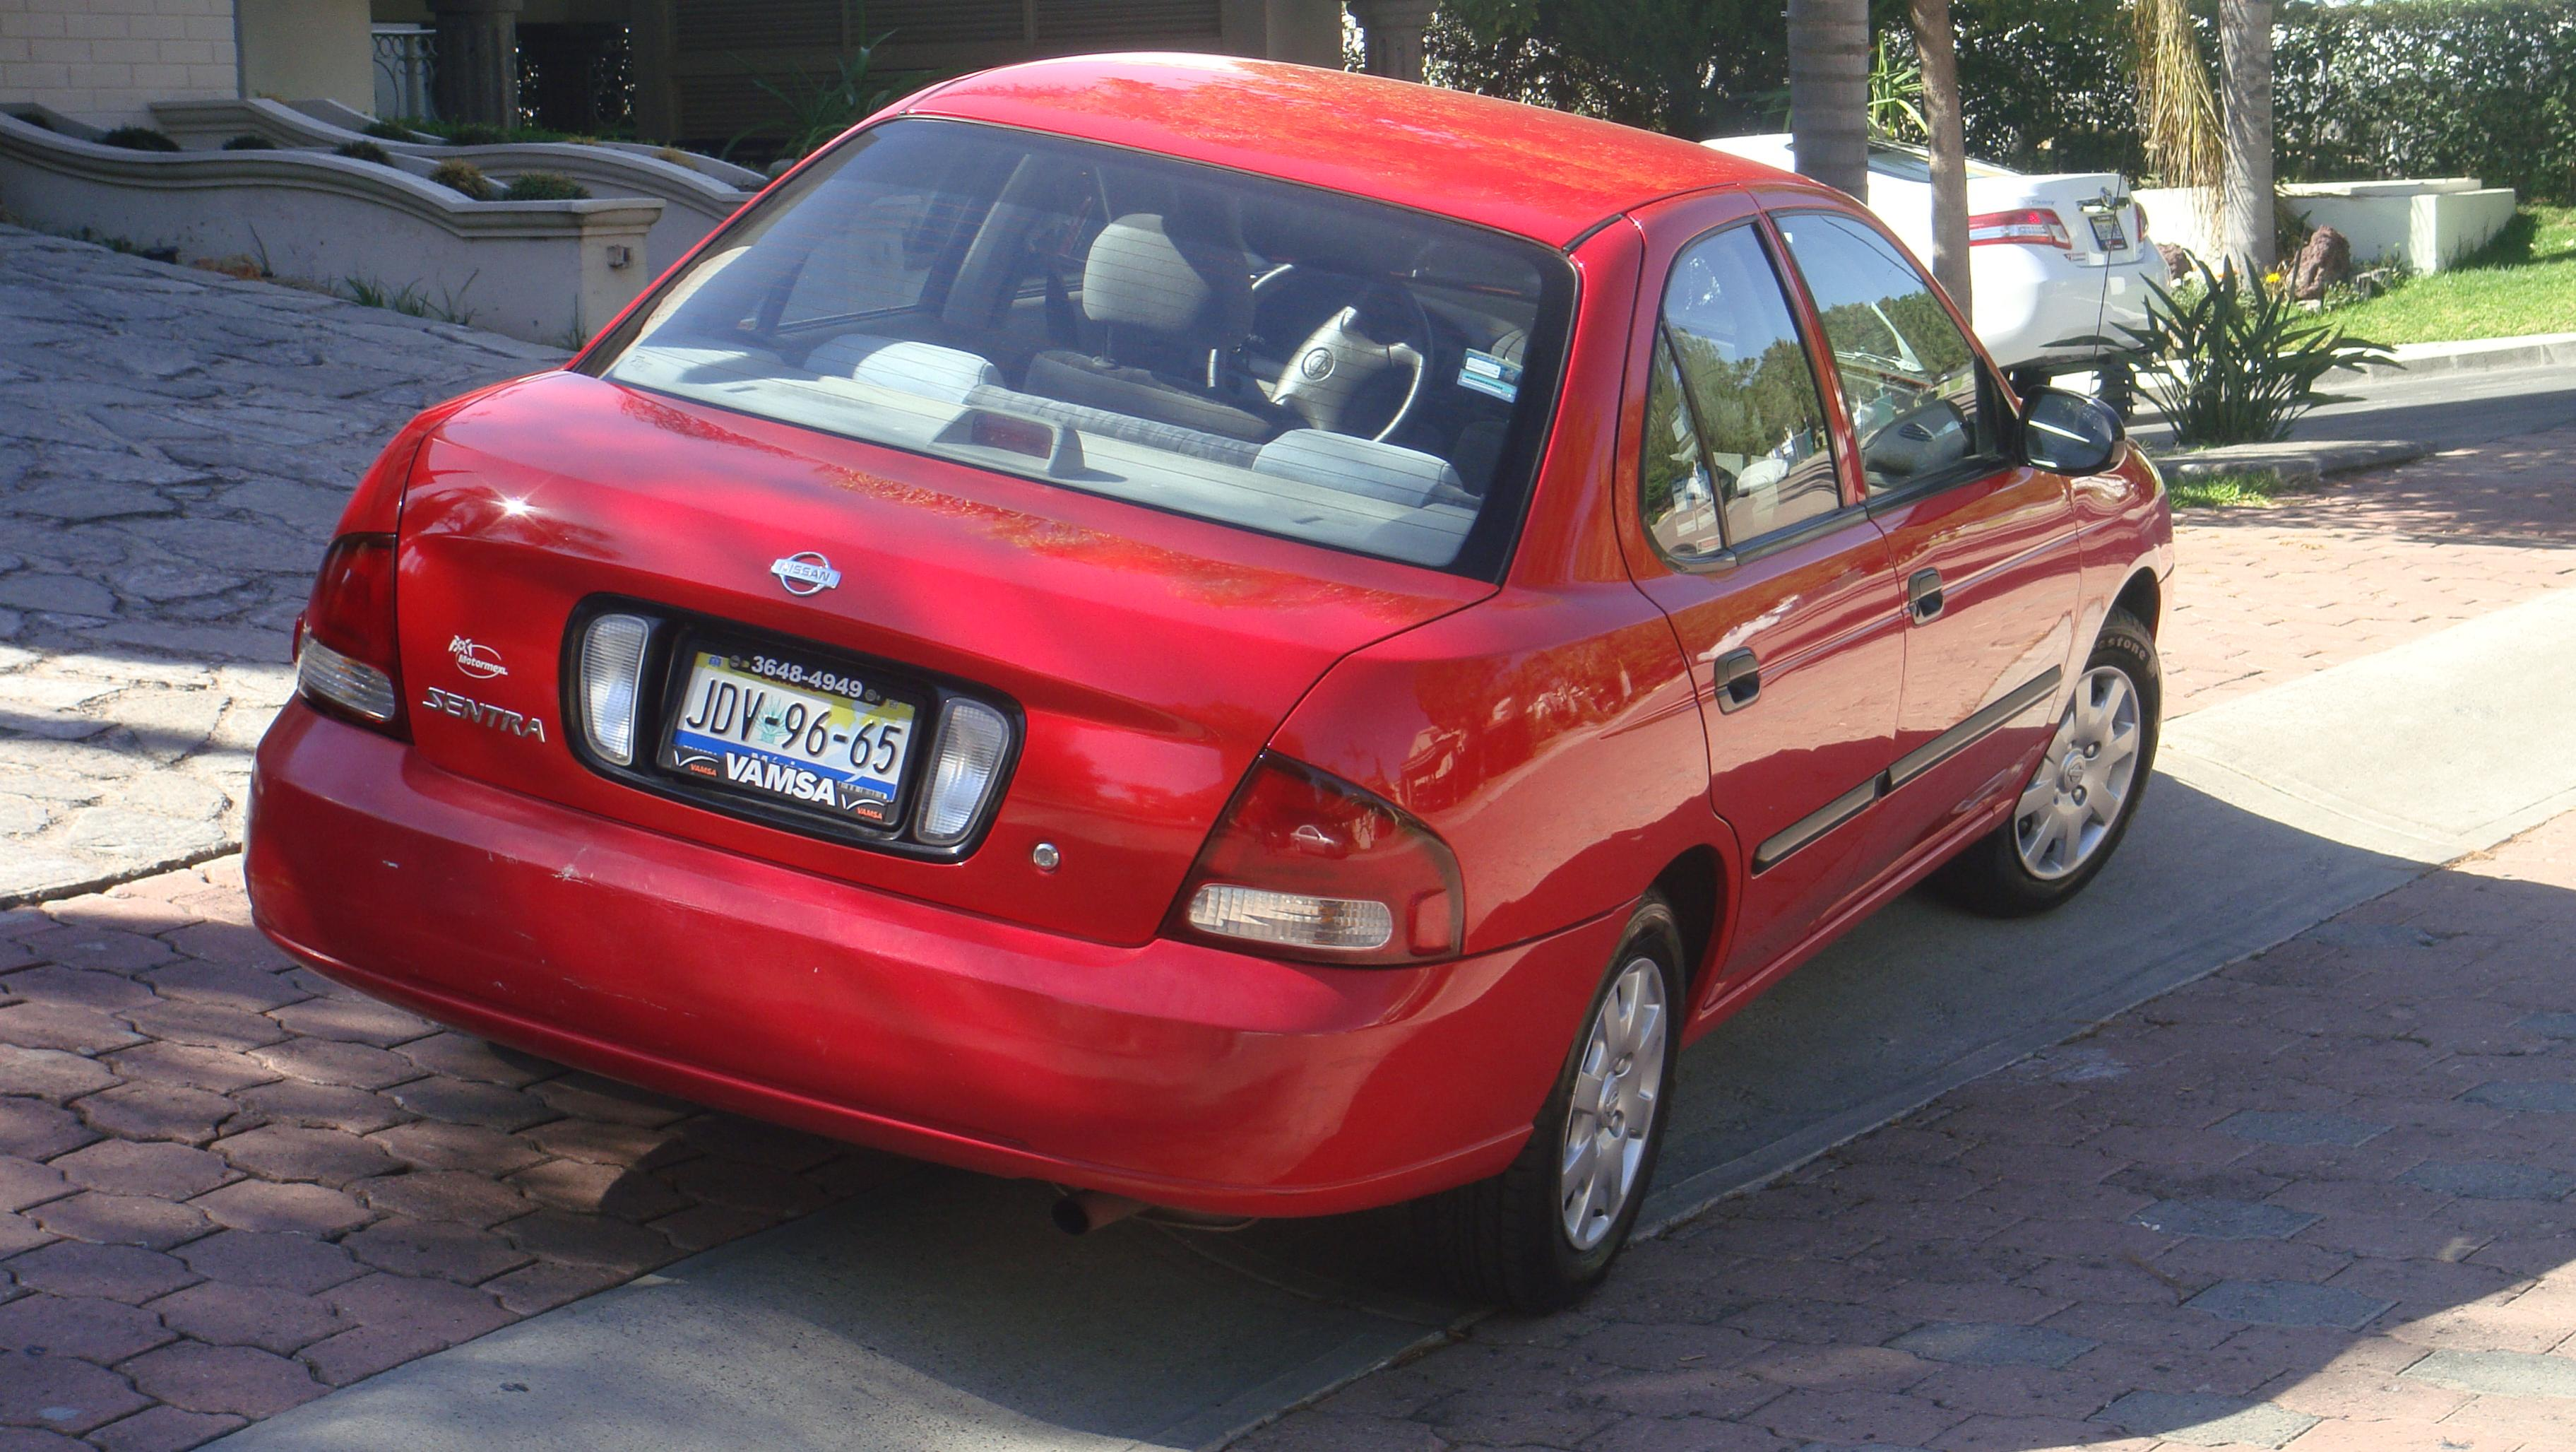 Cheap Car Tires >> 2001 Nissan Sentra- Red (Jalisco Plates) | UAG Medical School Classifieds